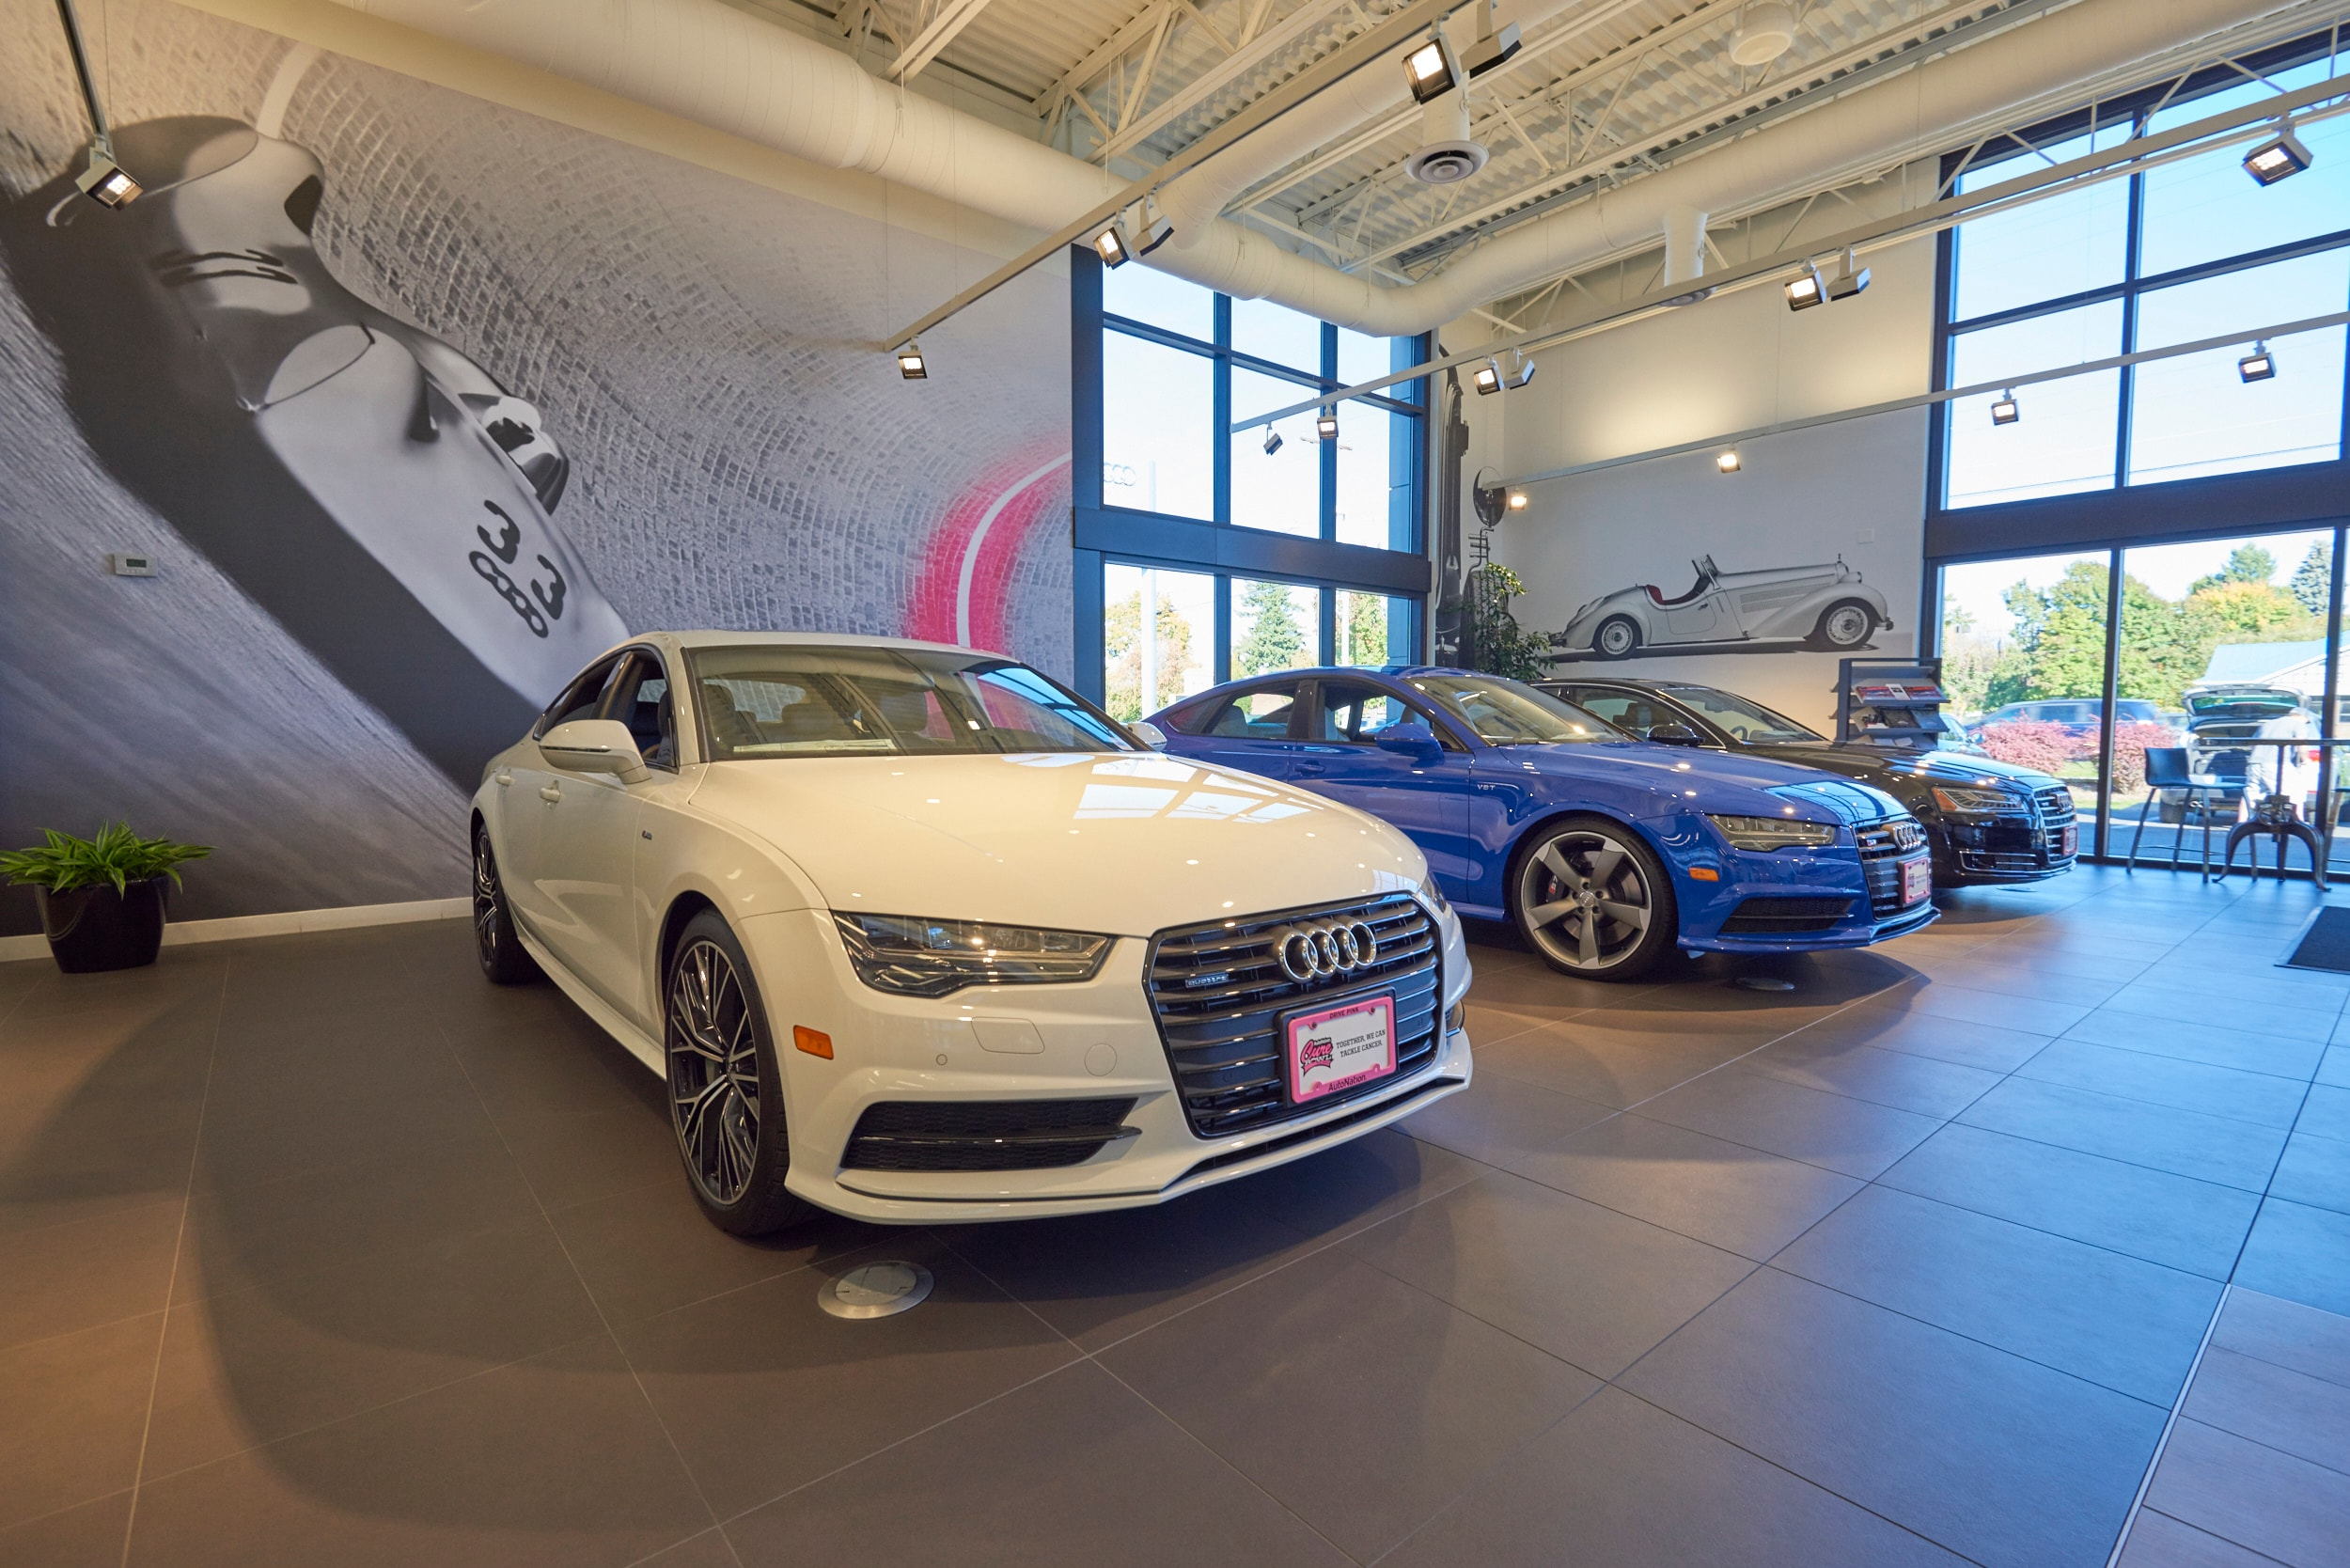 Spokane Valley Audi Dealer | Audi Spokane